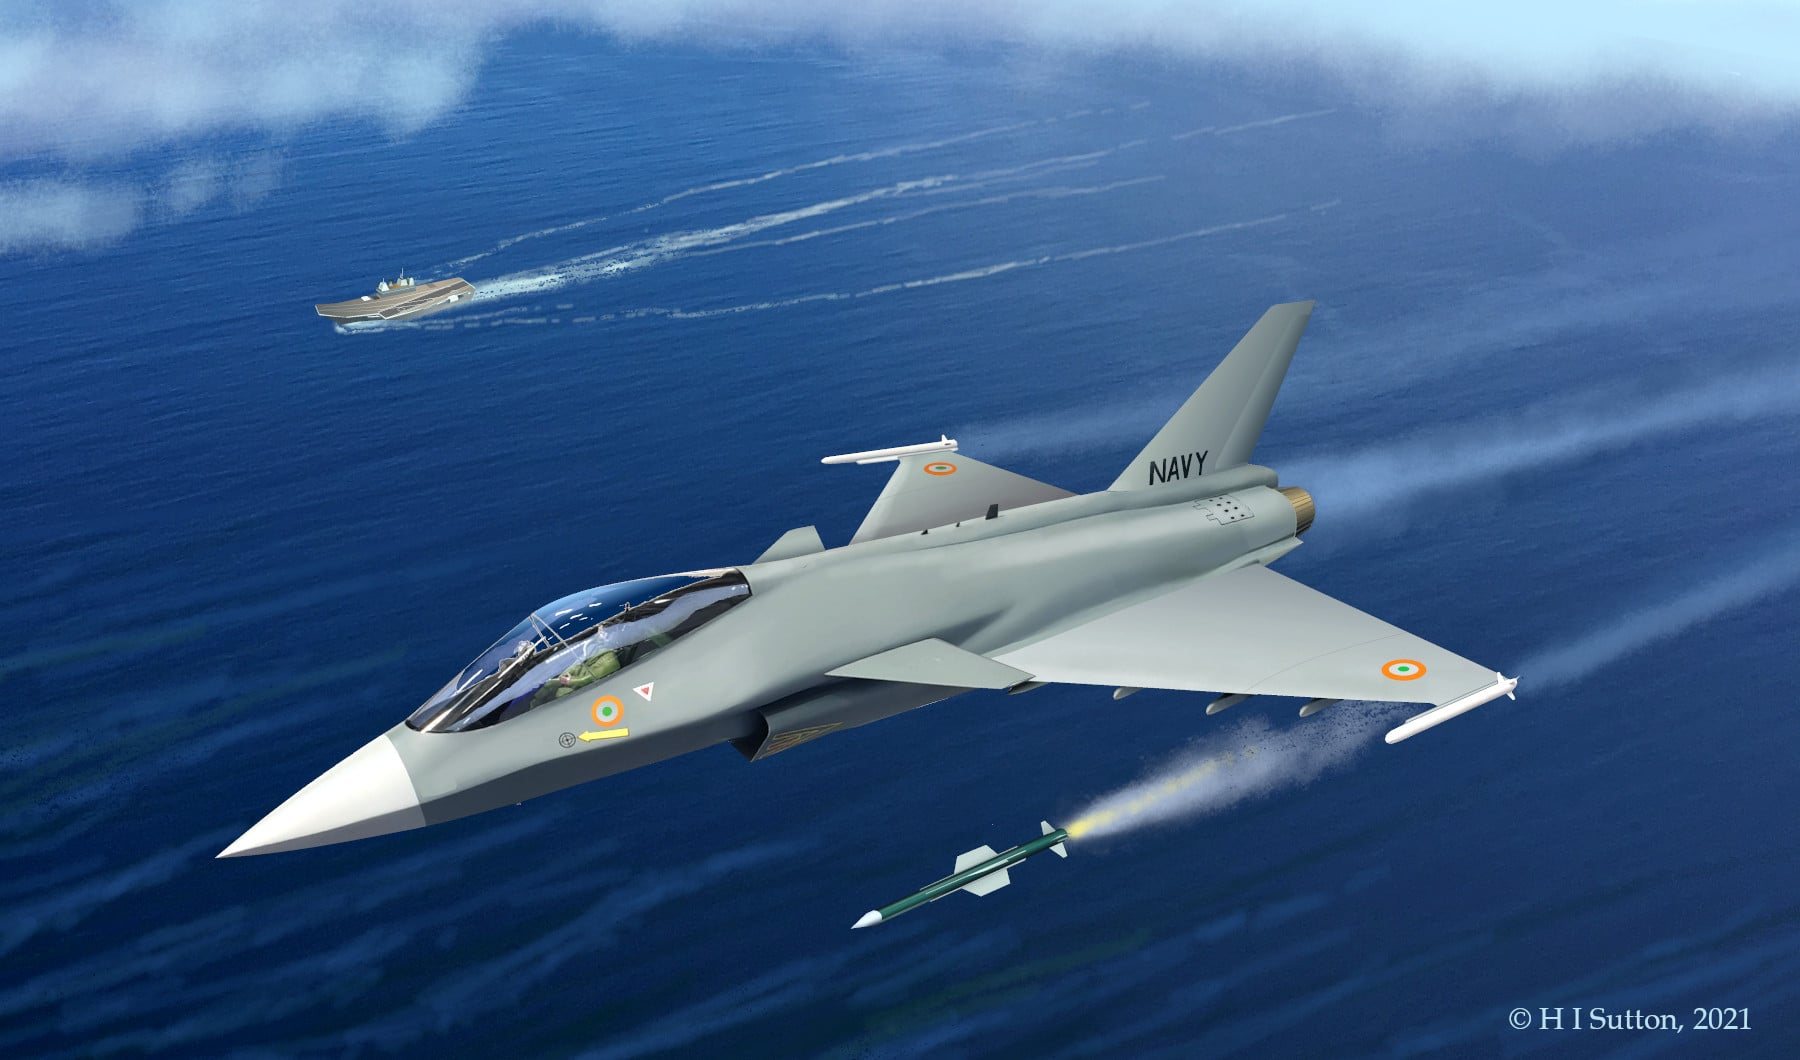 HAL-TEDBF-Fighter-Jet-With-Vikrant-Aircraft-Carrier-Art.jpg